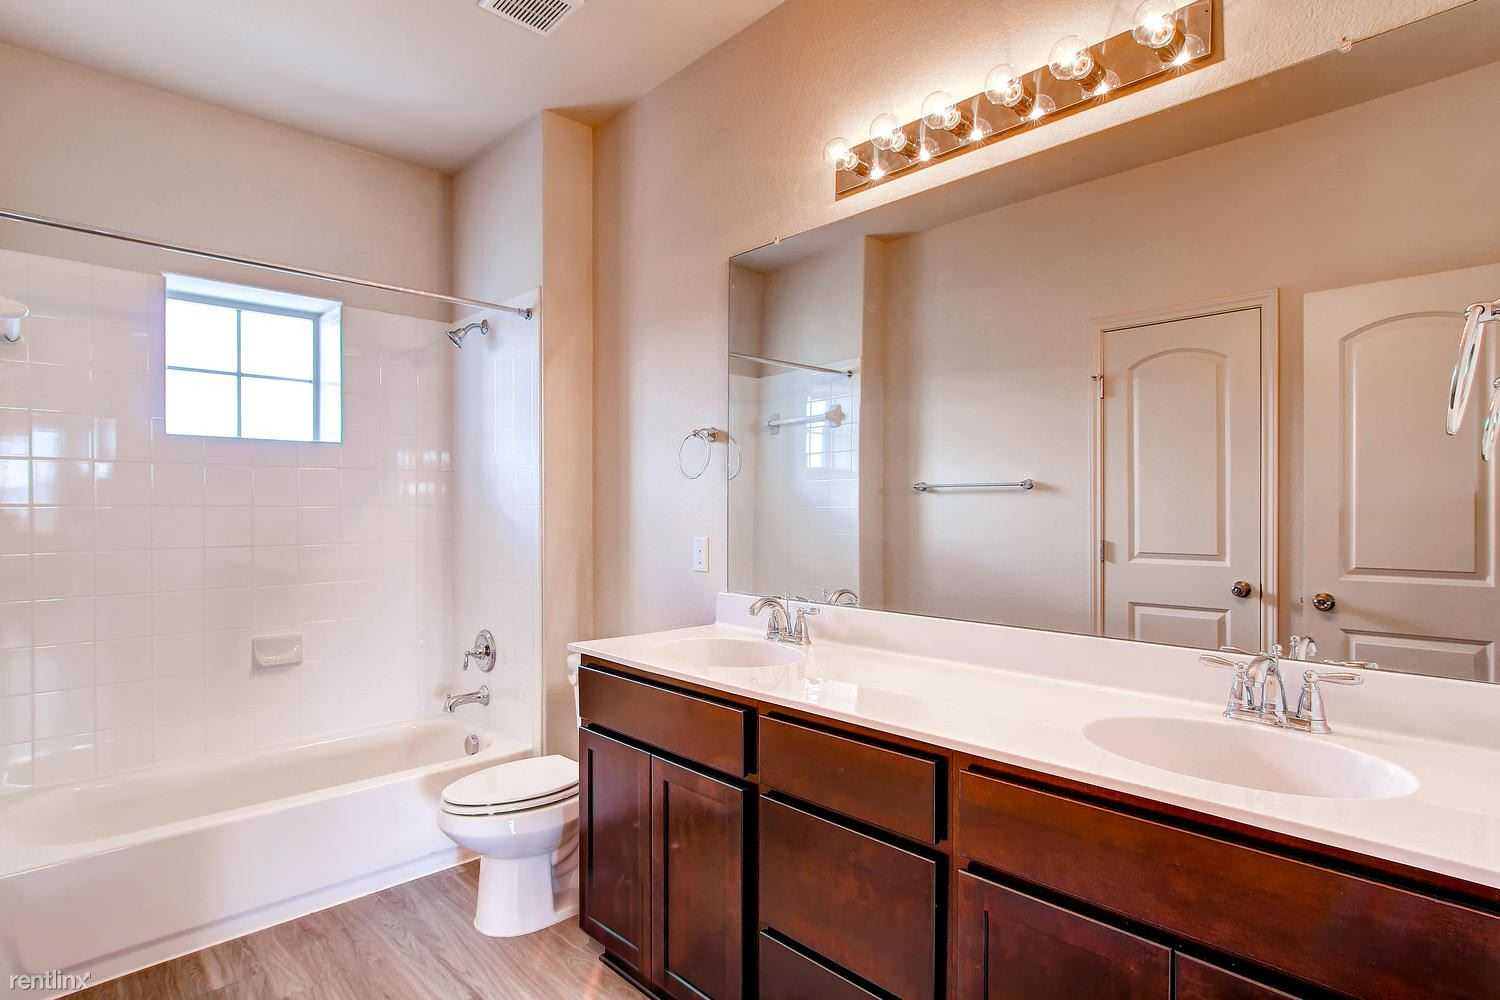 DoubleEagleTownhomes - 3 Bedroom - large-026-Double Eagle Townhomes 1  3-1500x1000-72dpi